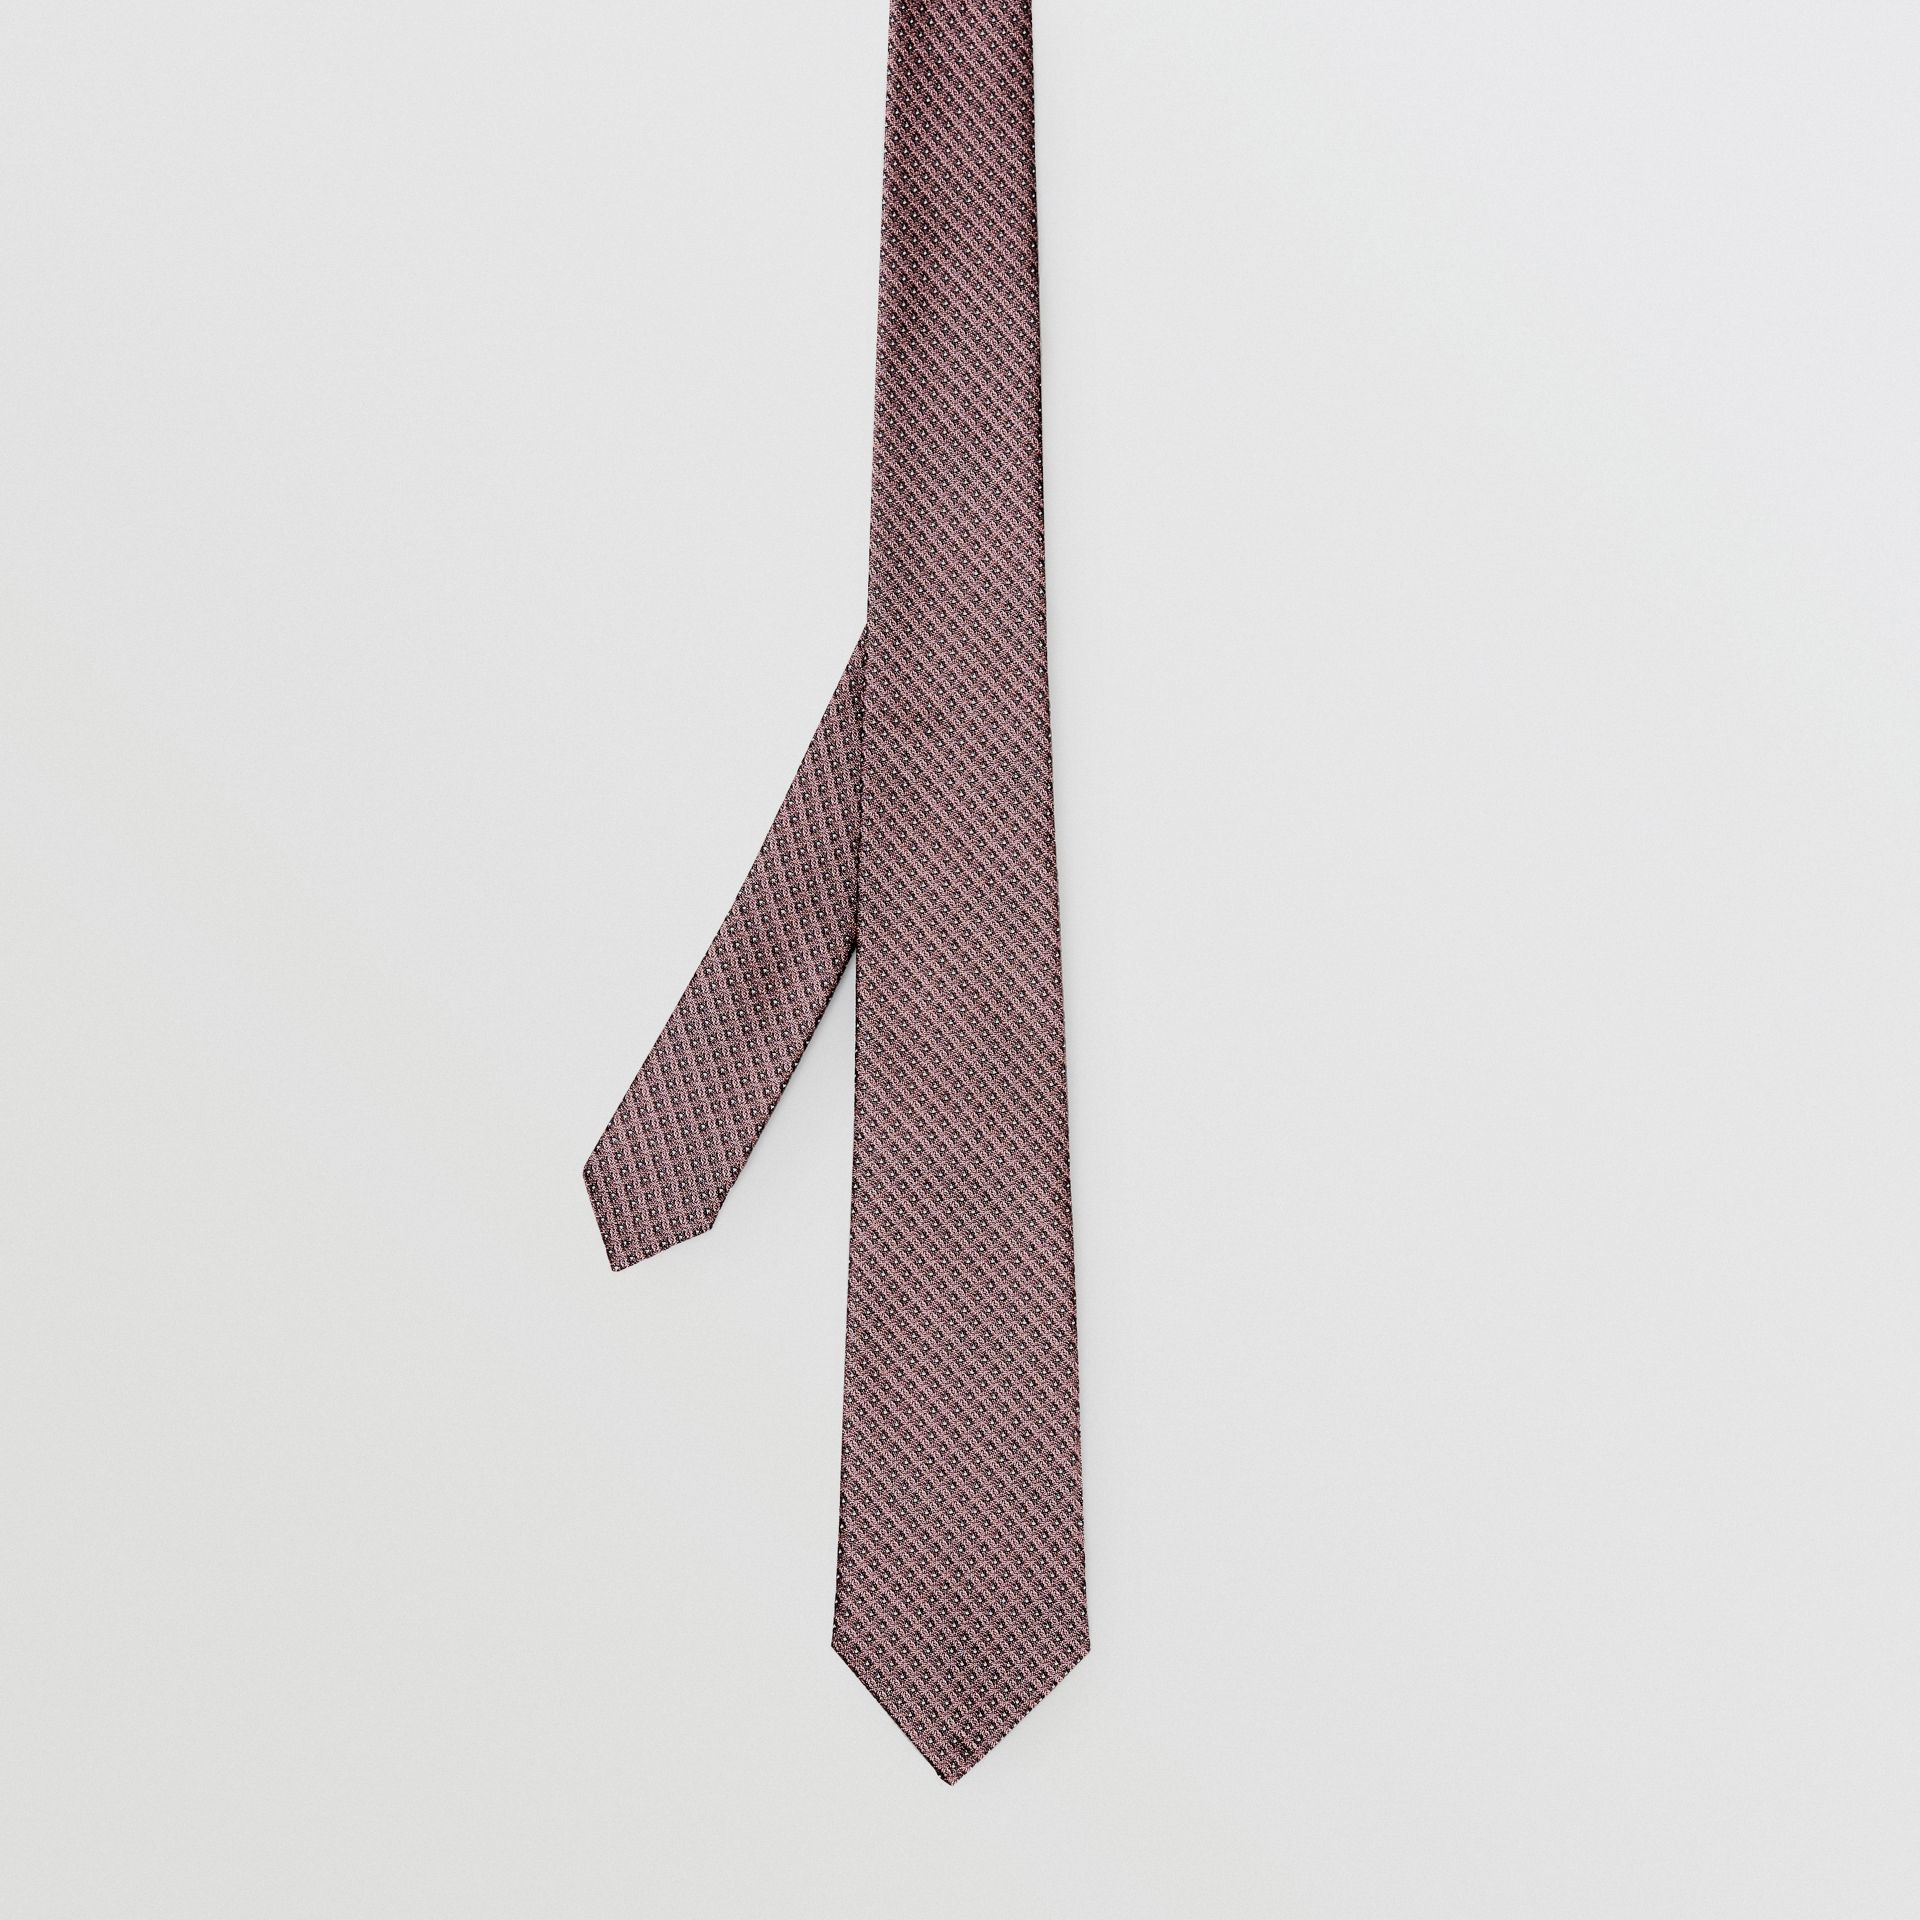 Classic Cut Micro Dot Silk Jacquard Tie in Garnet Pink - Men | Burberry United Kingdom - gallery image 4